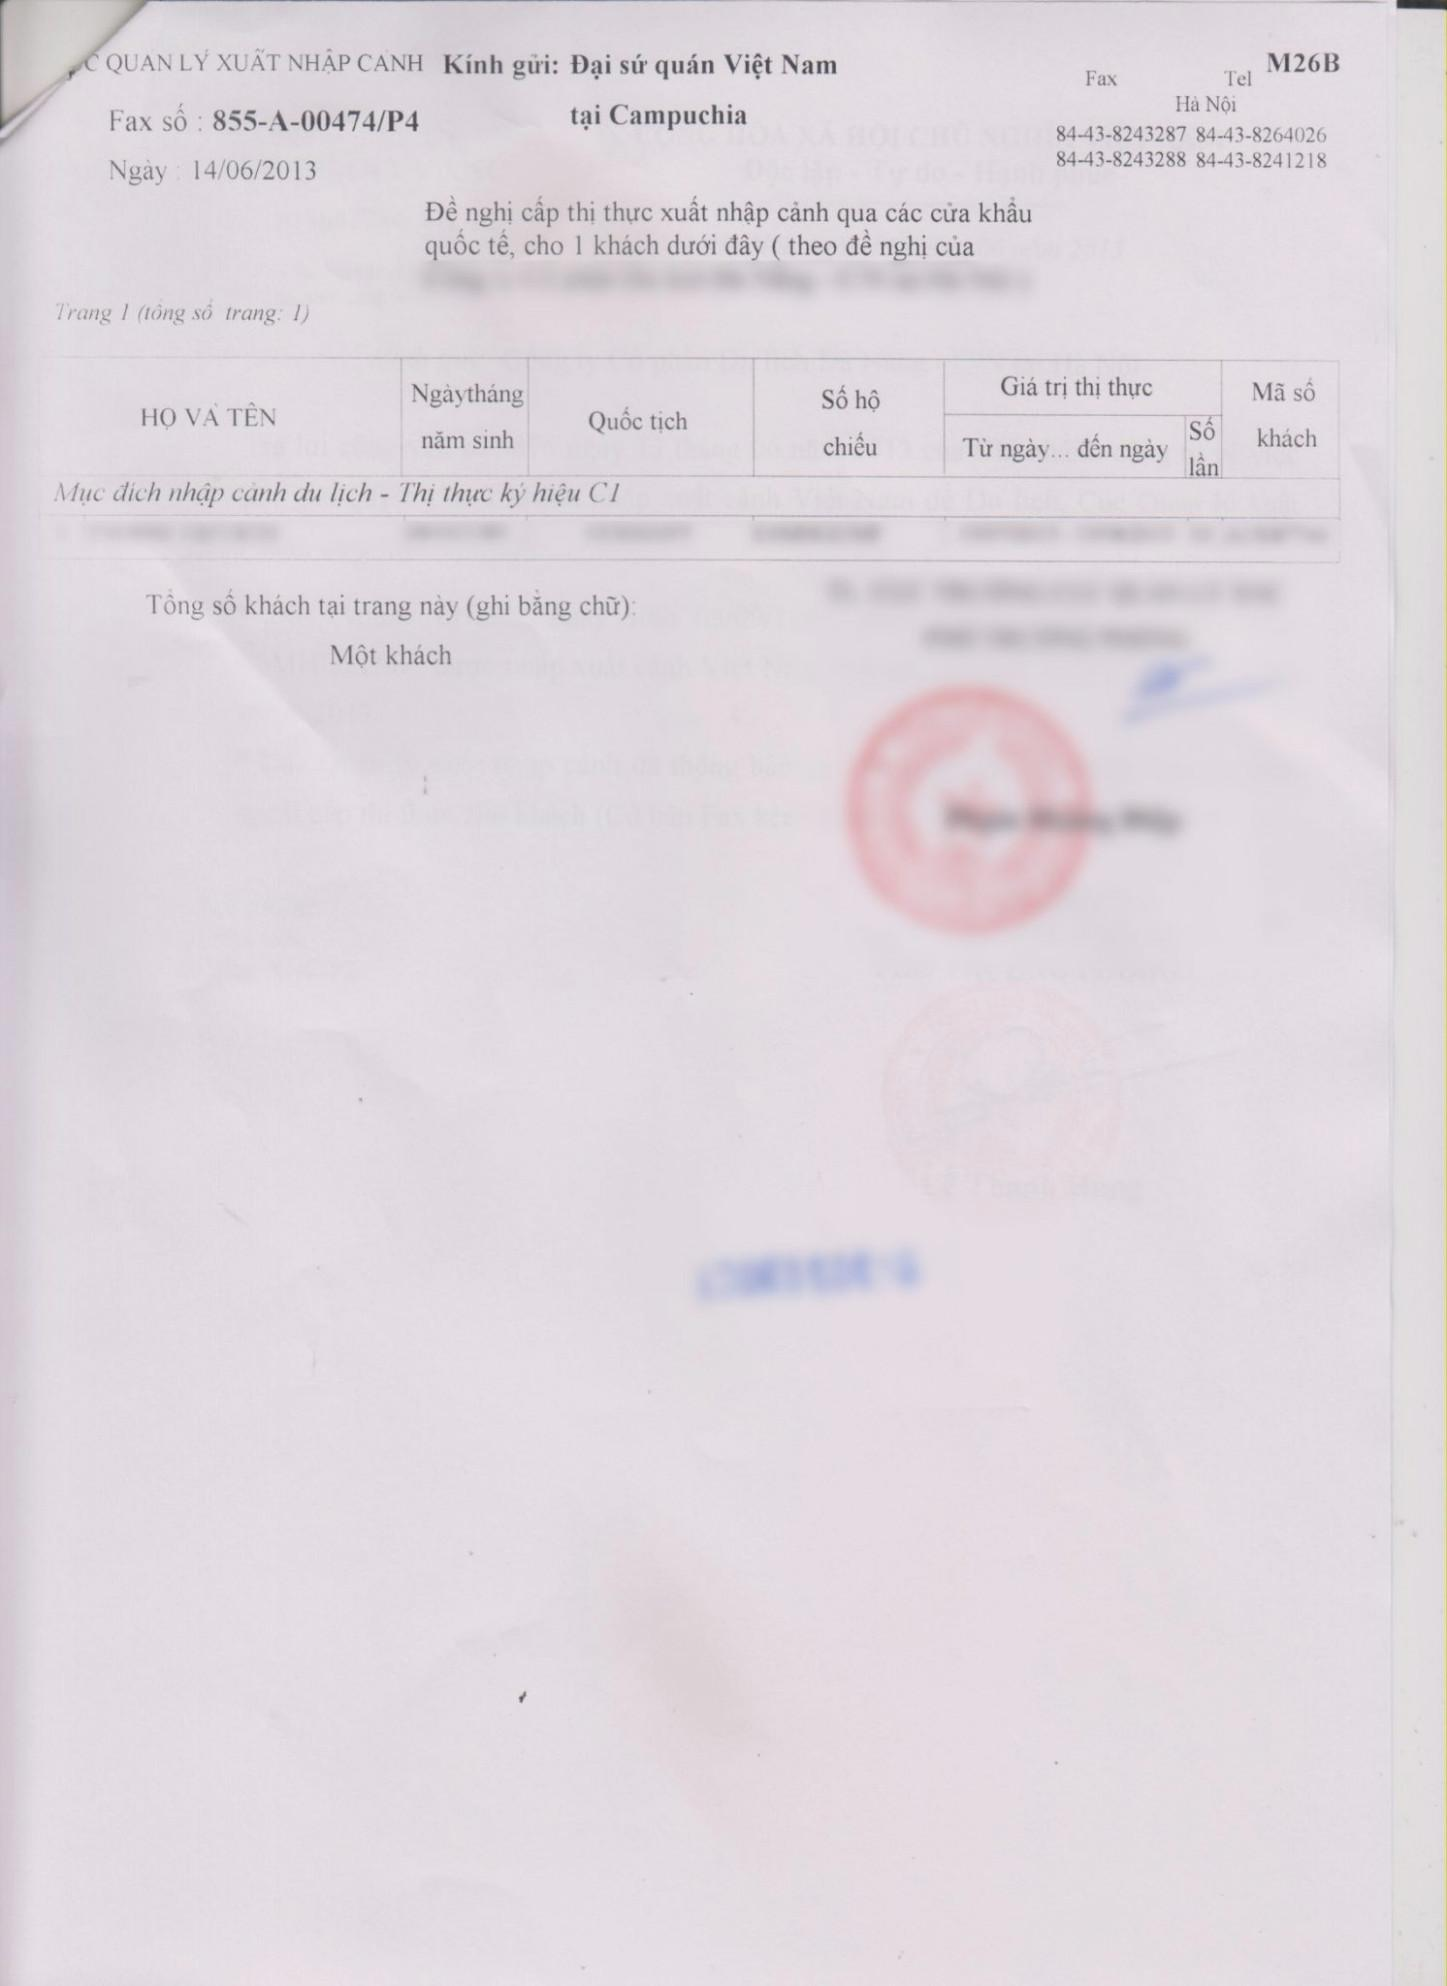 Vietnam Visa Application Form Pdf